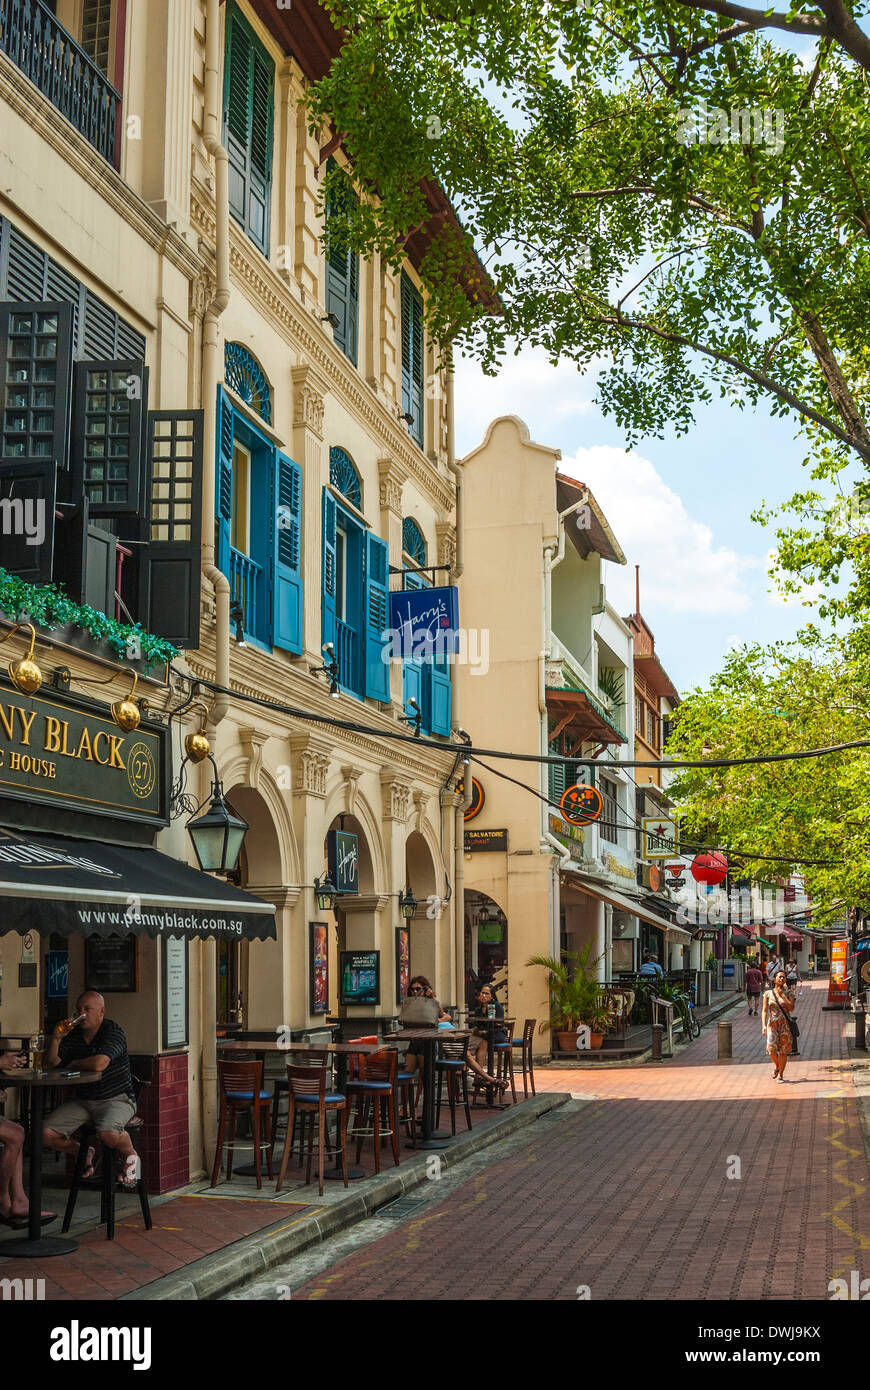 Boat Quay, Singapore, showing Harry's Bar - Stock Image